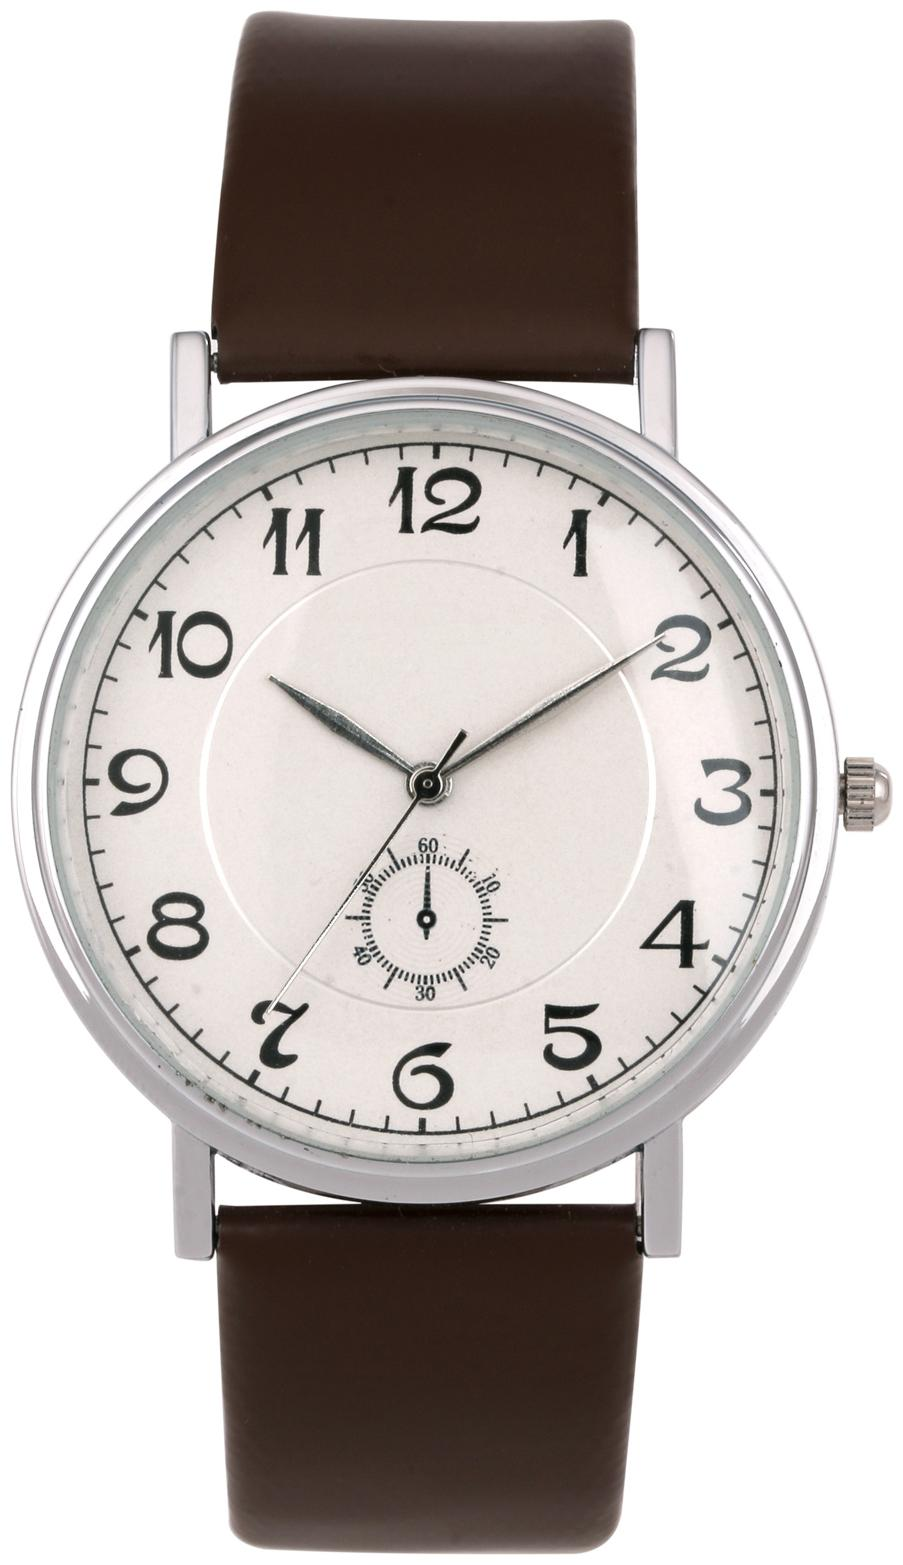 Royal Son White Dial Analog Wrist Watch for Men and Boys by Royal Son